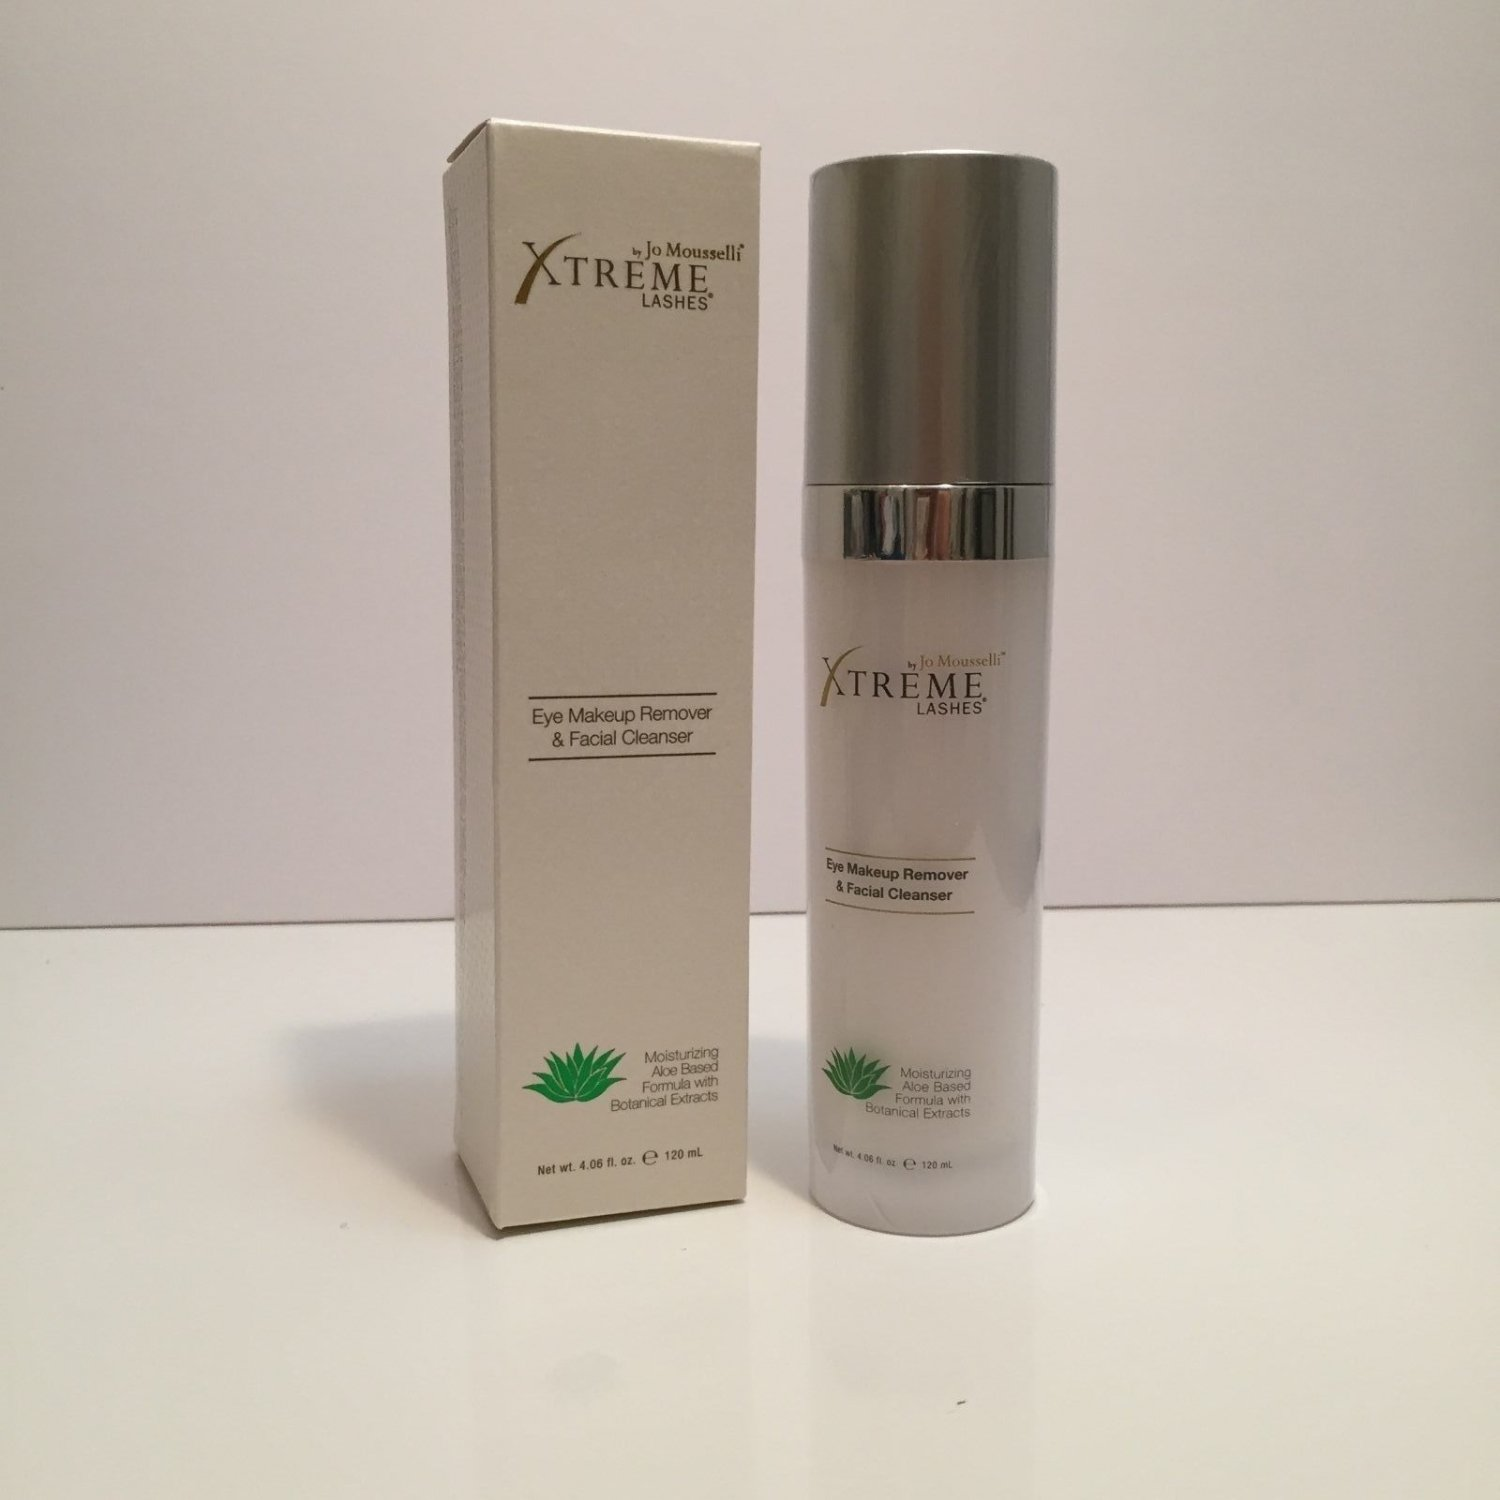 Xtreme Lashes® Eye Makeup Remover & Facial Cleanser 120mL Full Size